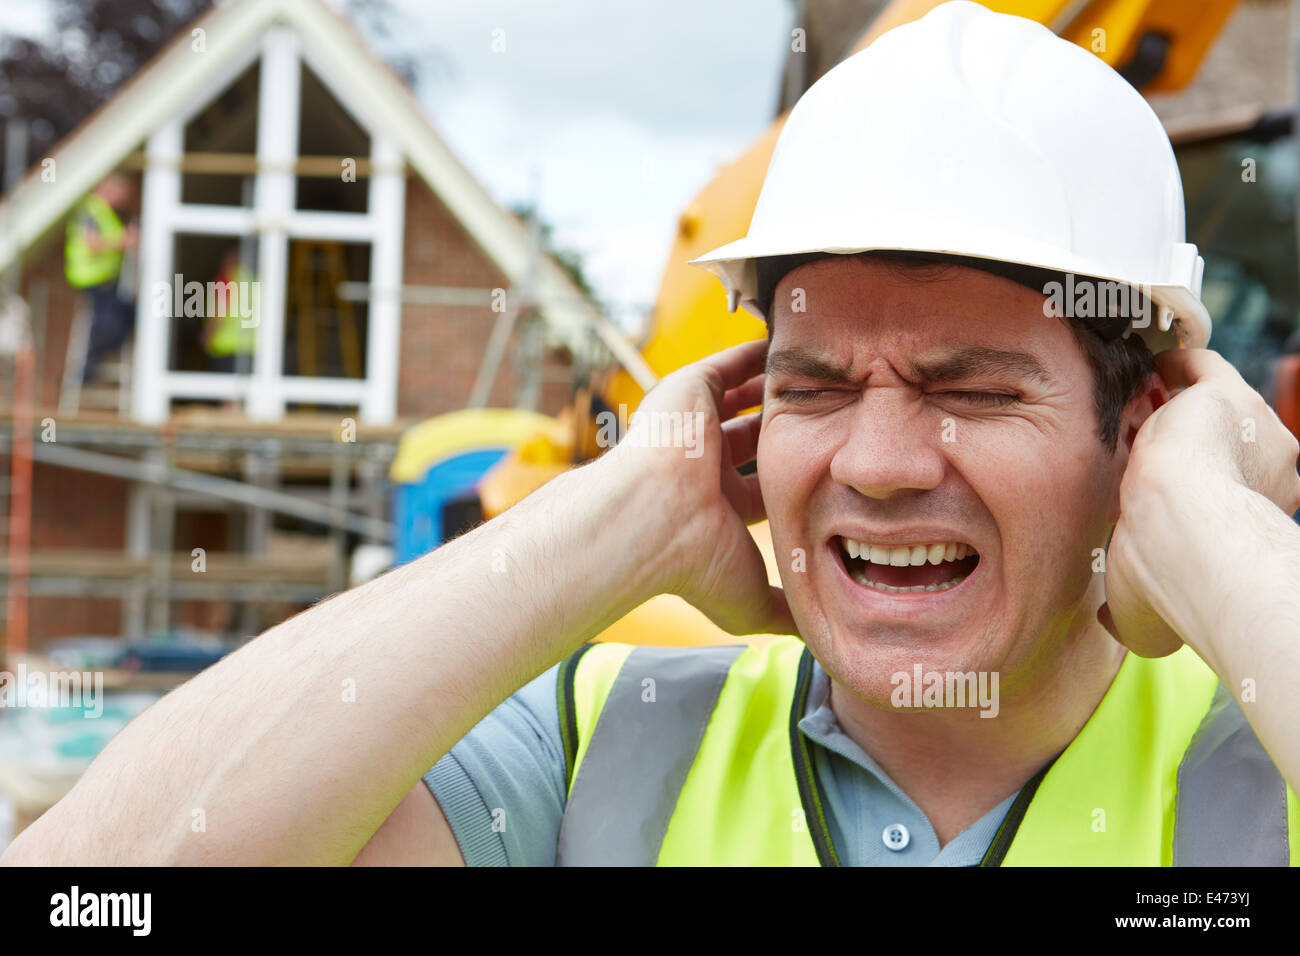 La construction souffre de la pollution sonore sur chantier Photo Stock